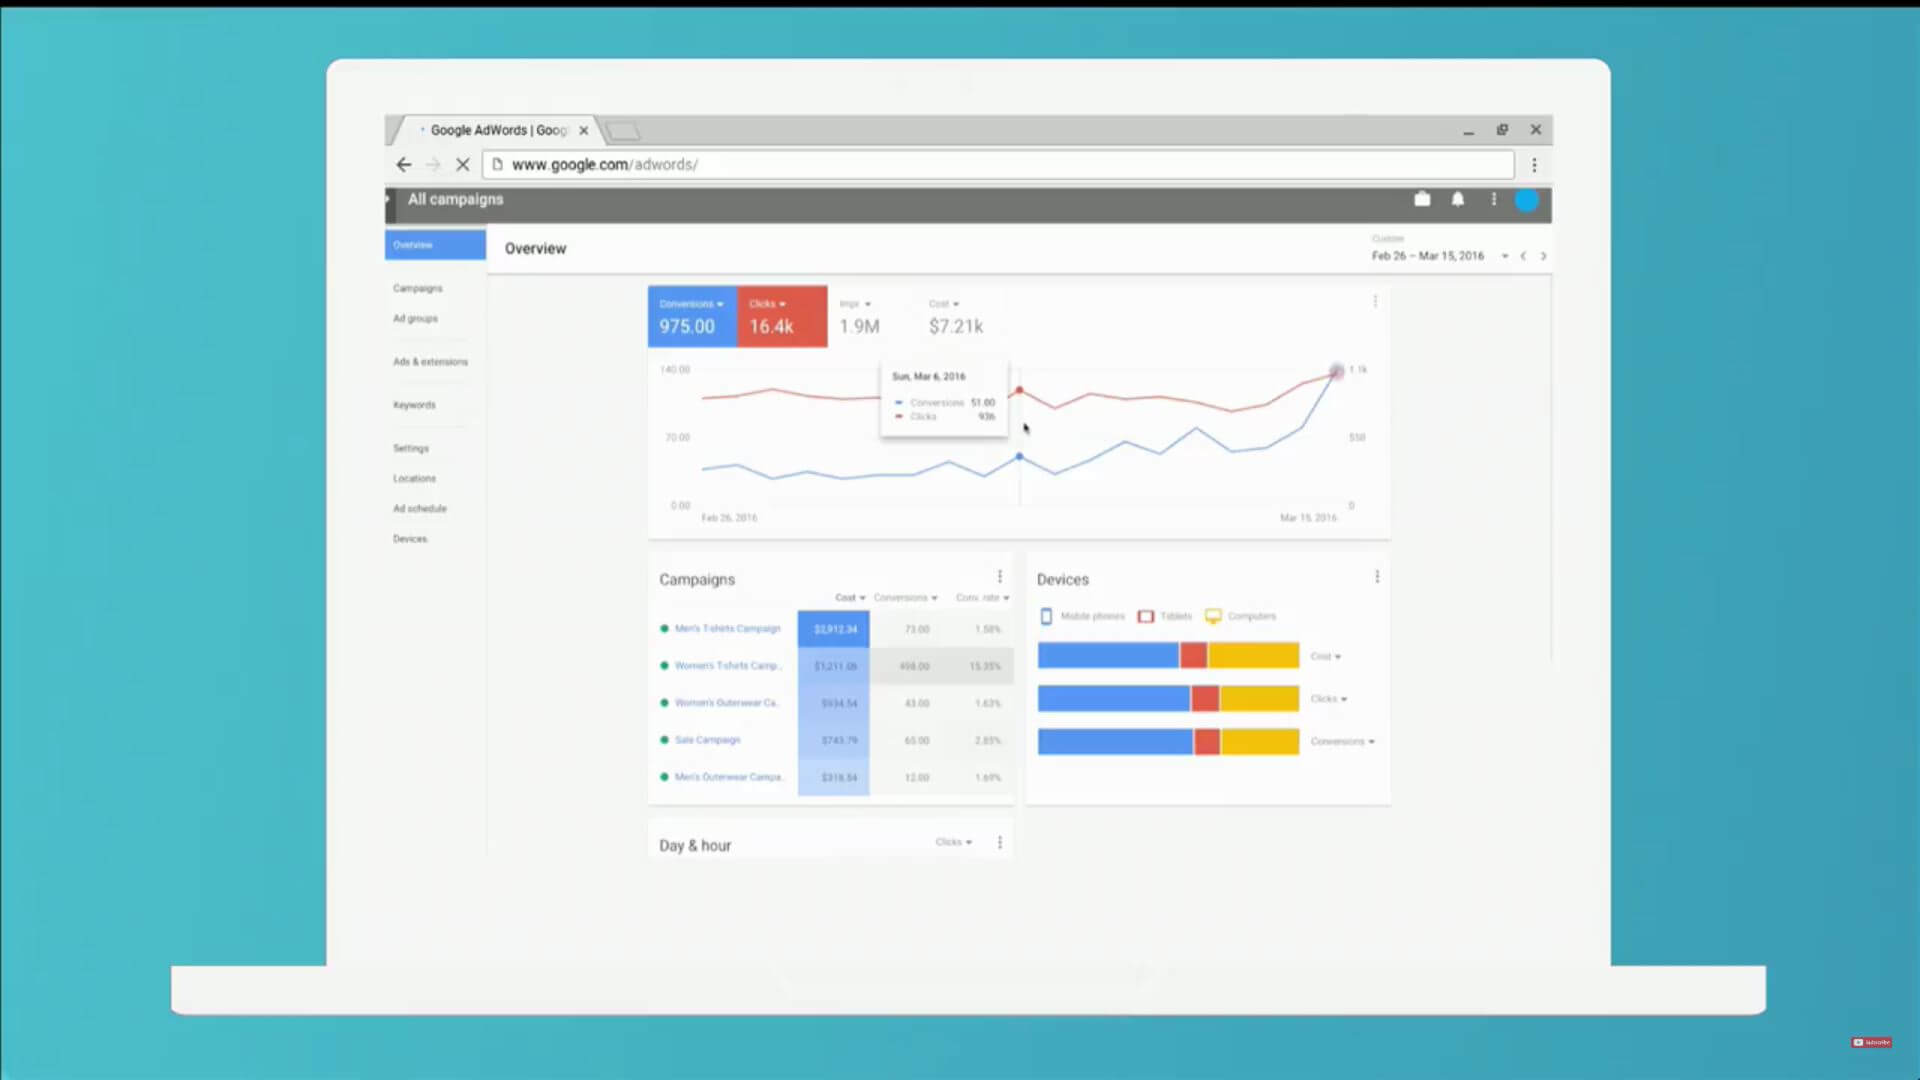 The New 2017 AdWords Interface